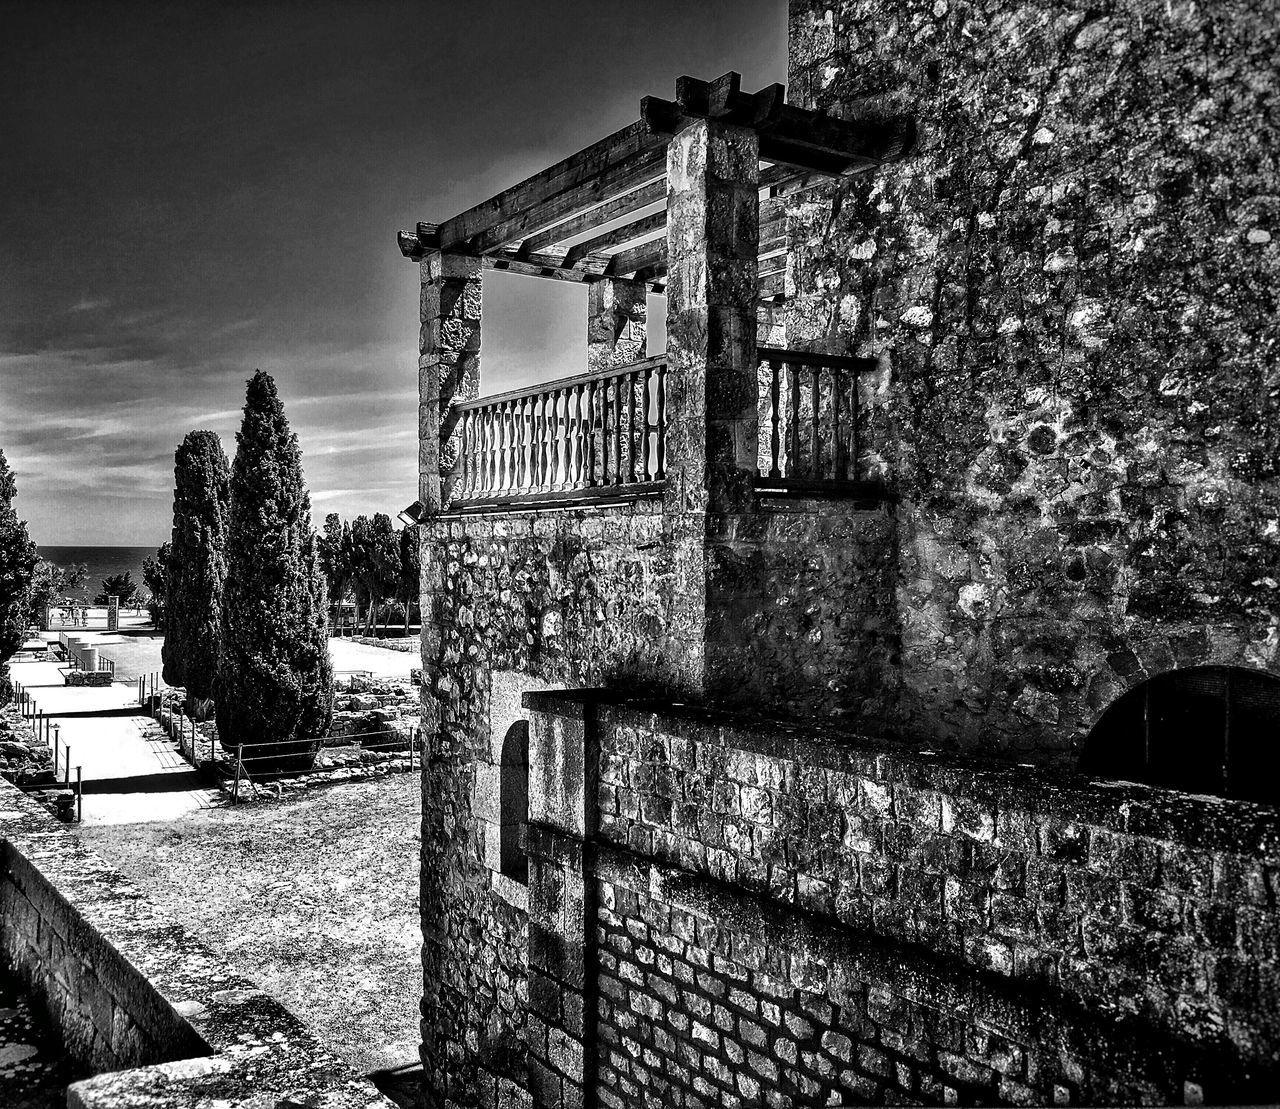 Civilización Griega y Romana Ruined Ruins Civilization Black And White Collection  Black And White Photography Black & White Blackandwhite Architecture Architecture_collection Architectural Detail Architectural Feature HDR Hdr_Collection Monochrome Photography